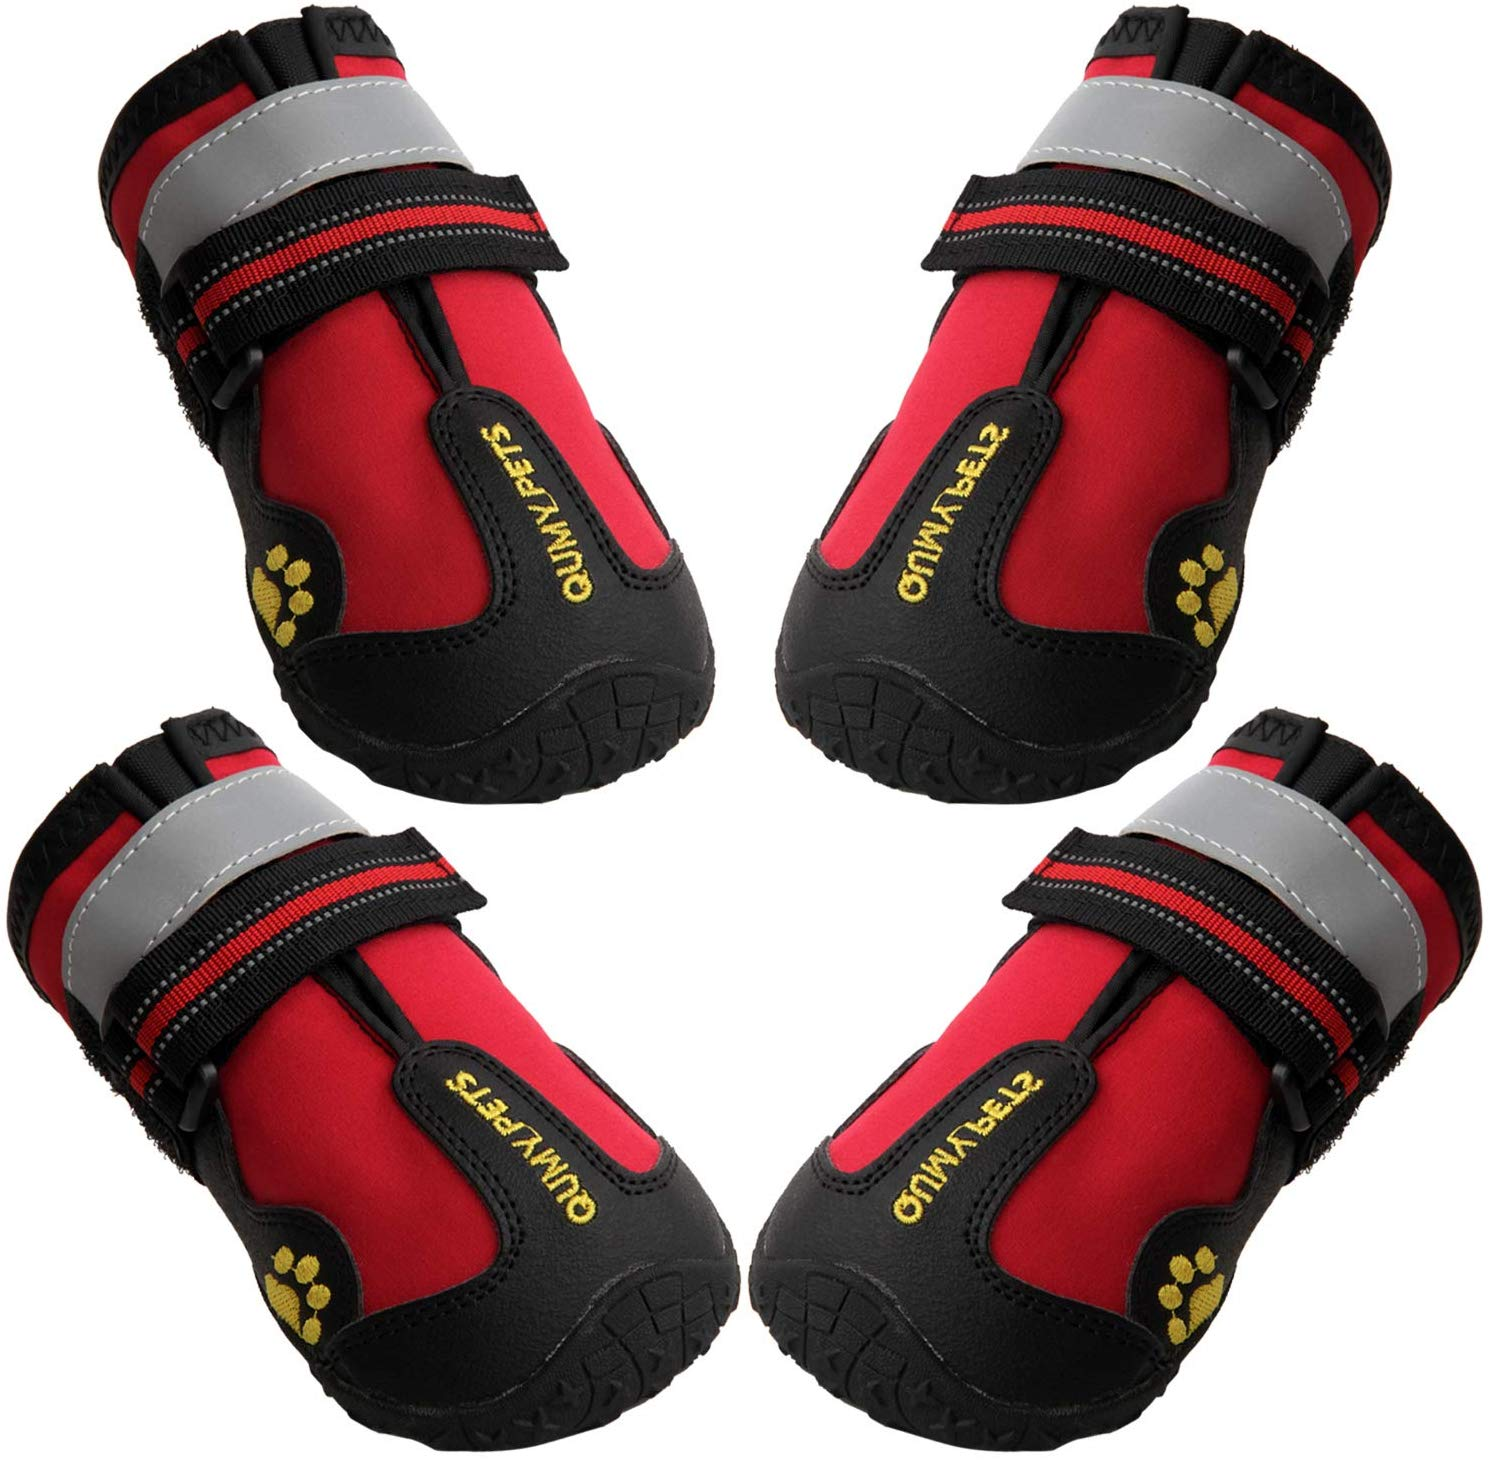 qumy dog boots,sizing,size chart,size 4,size 5,canada,review,dog boots qumy,waterproof